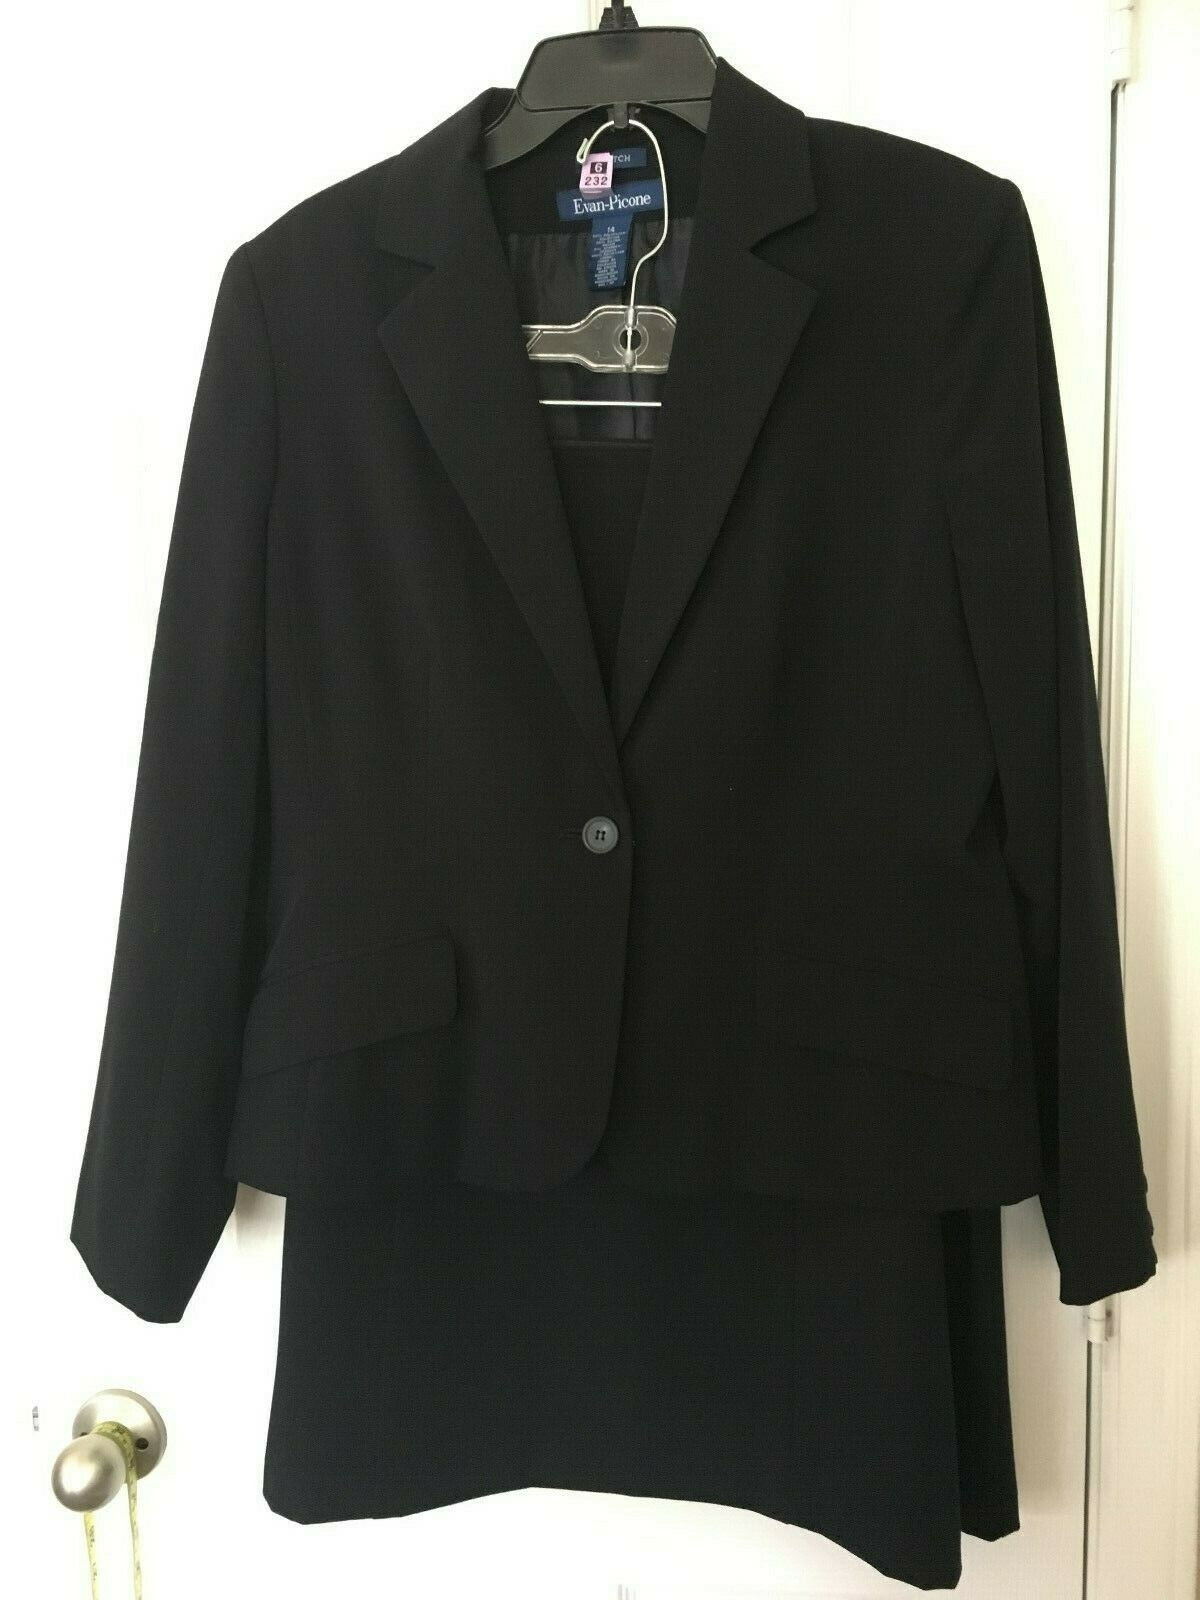 Womans Evan Picone bluee Skirt Suit - Size 14